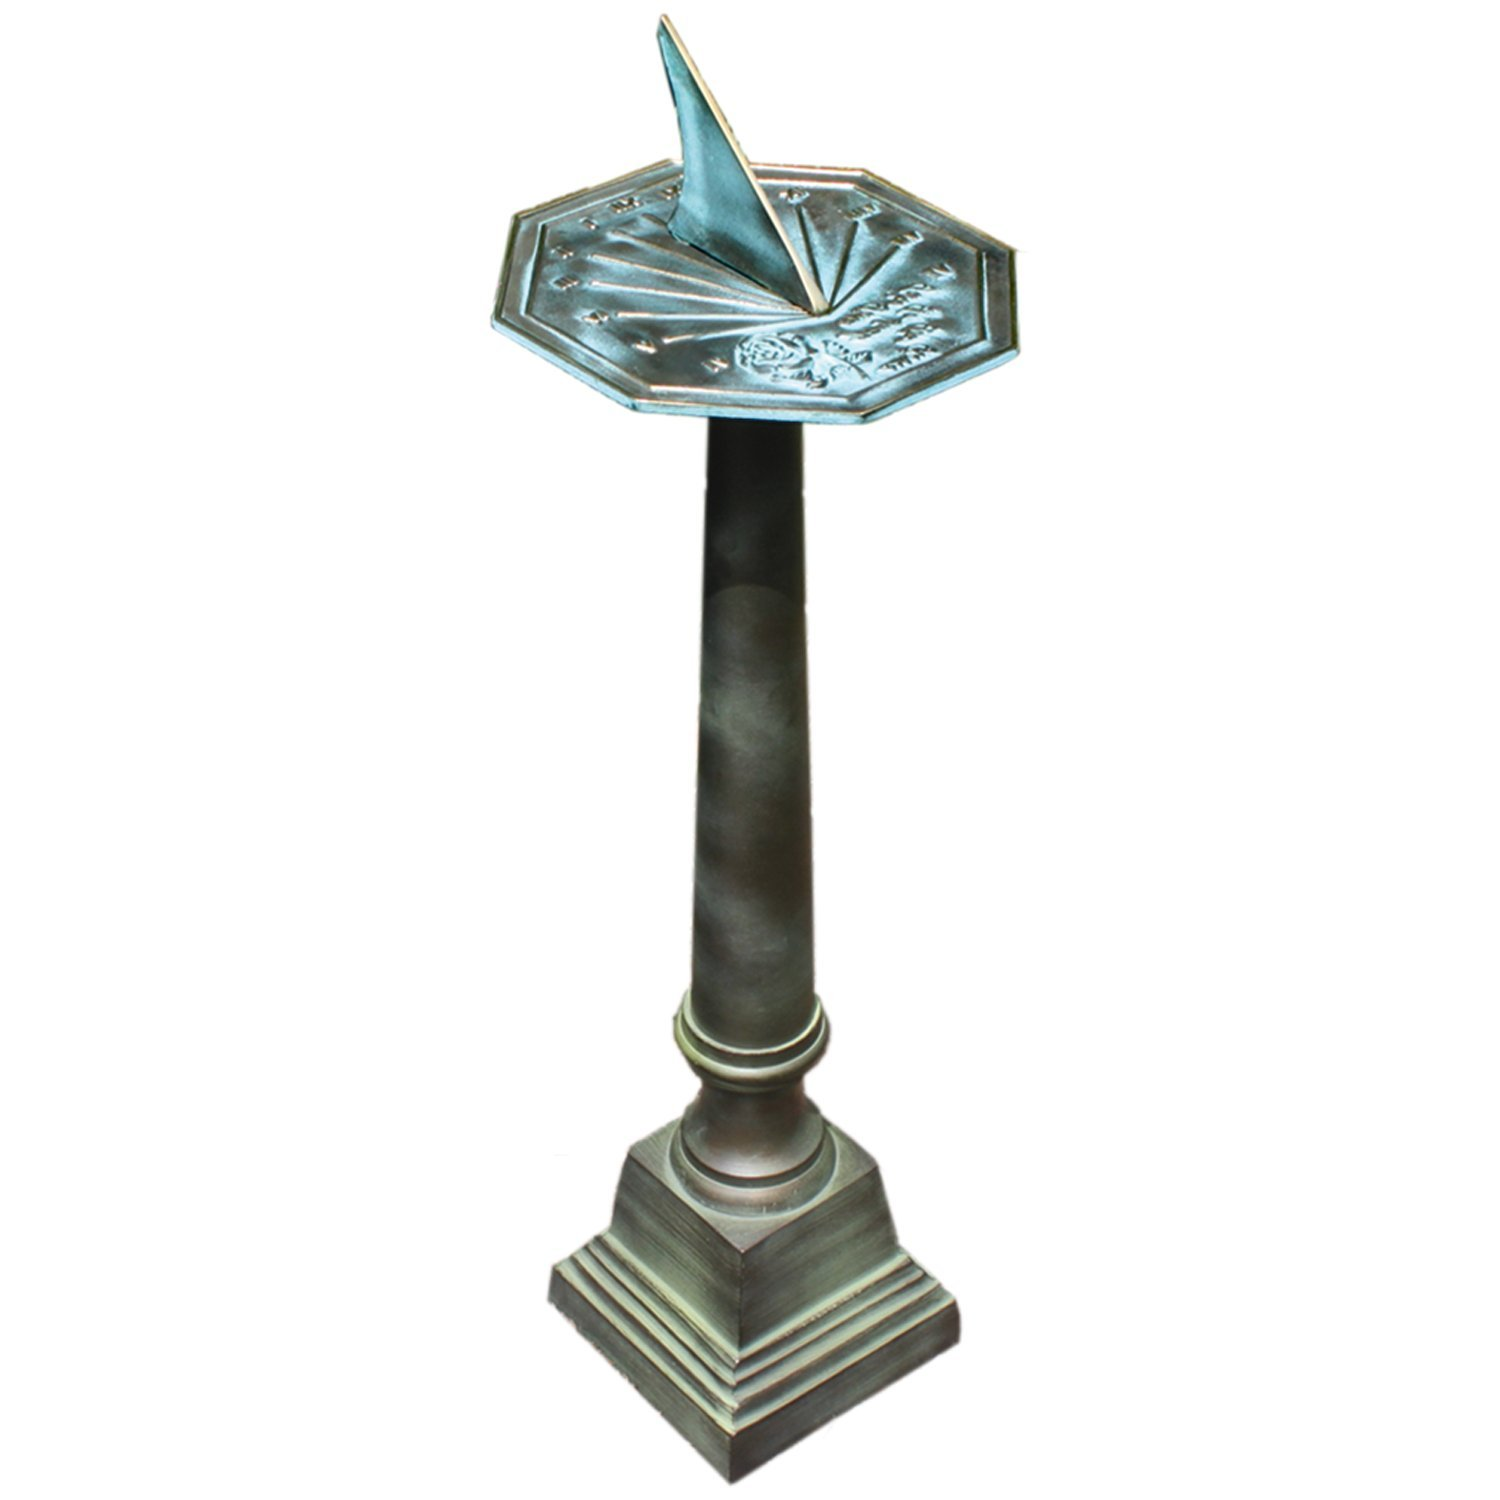 Sundial garden ornament - Rome B28 Aluminum Column Sundial Pedestal Cast Aluminum With Copper And Light Verdigris Patina Finish 25 Inch Height